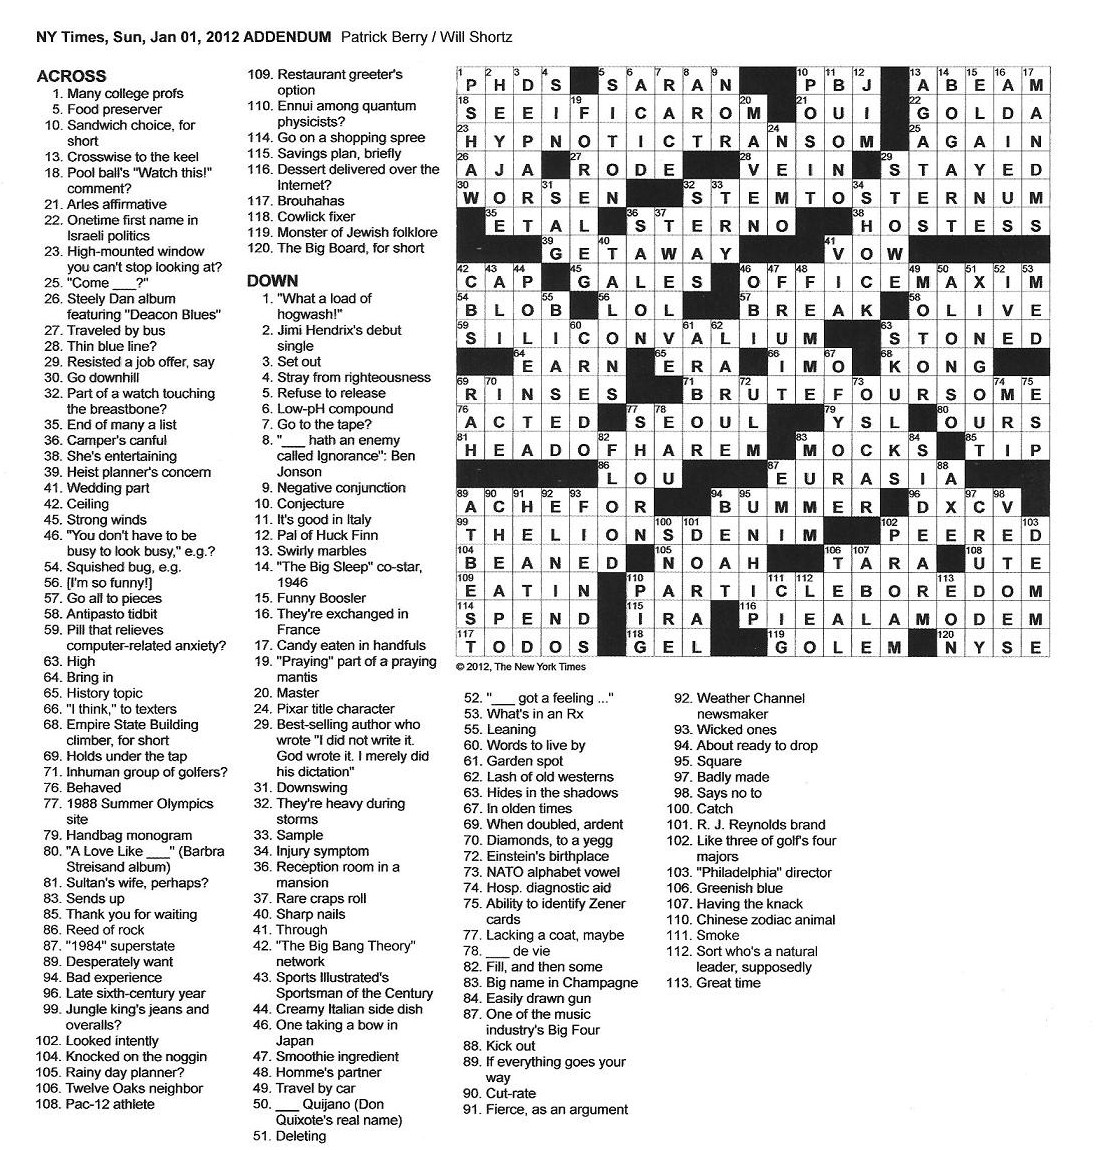 ea96d74168 The New York Times Crossword in Gothic  01.01.12 — Addendum